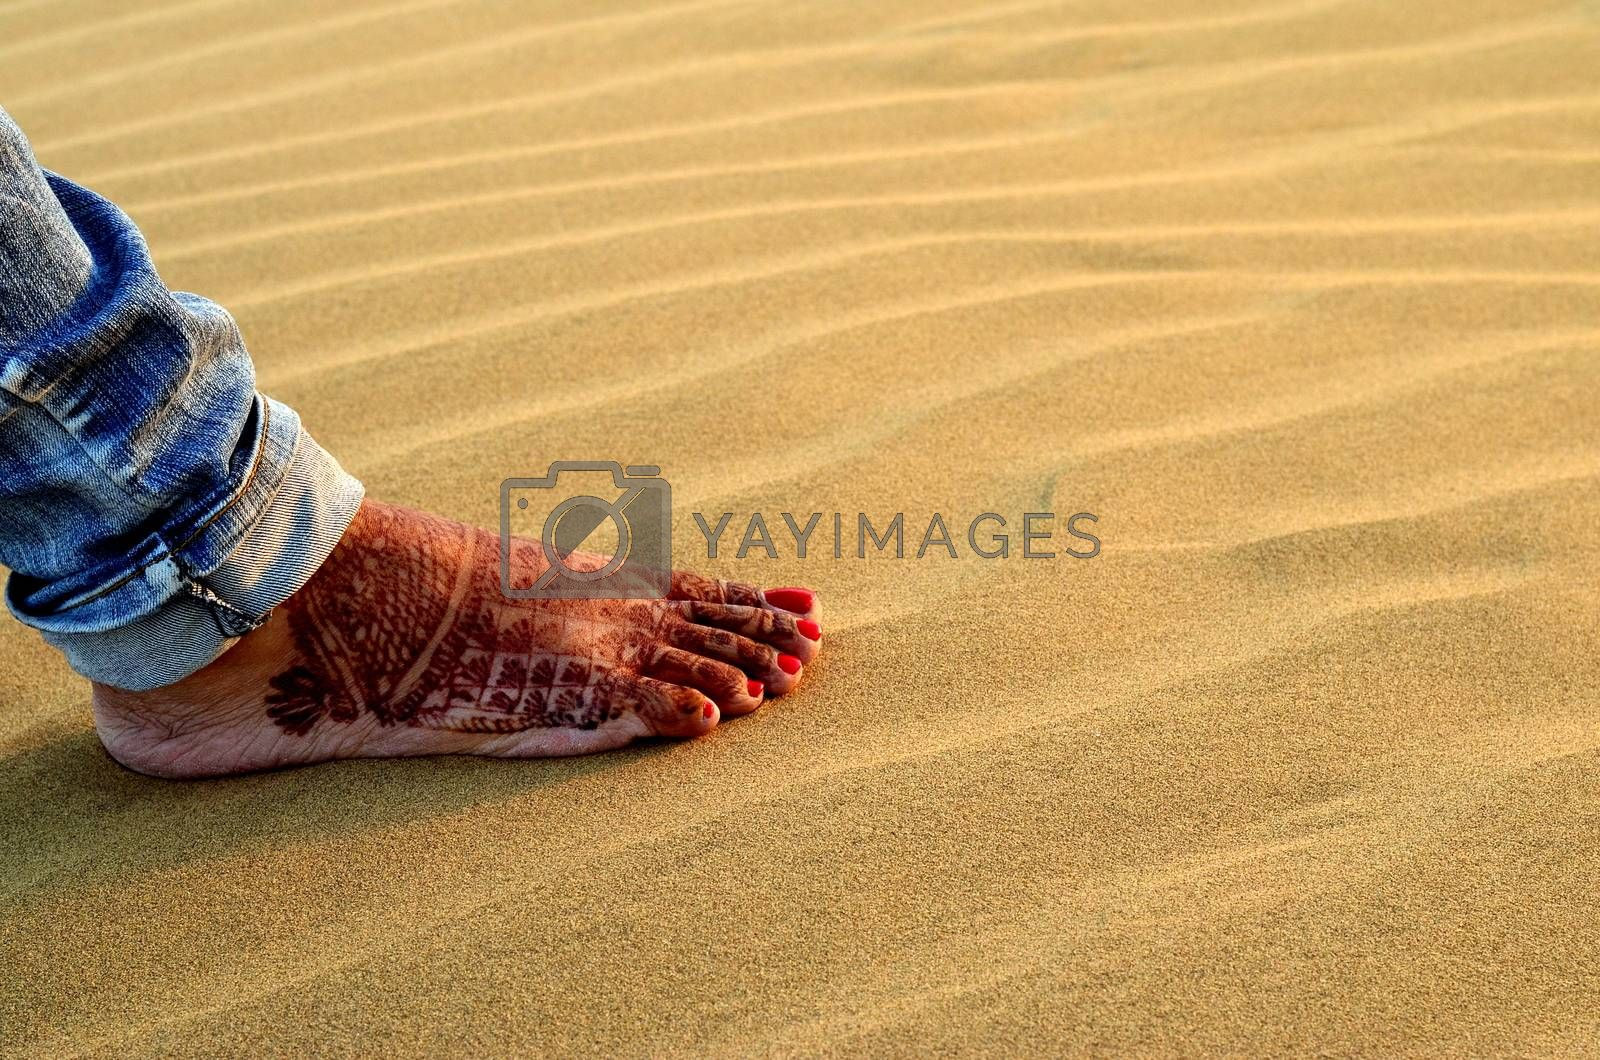 A newly married woman showing her foot with henna design in Sam Sand Dune, Thar desert, Jaisalmer, Rajasthan, India. Indian women apply henna on their feet and hands as a part of their wedding ritual